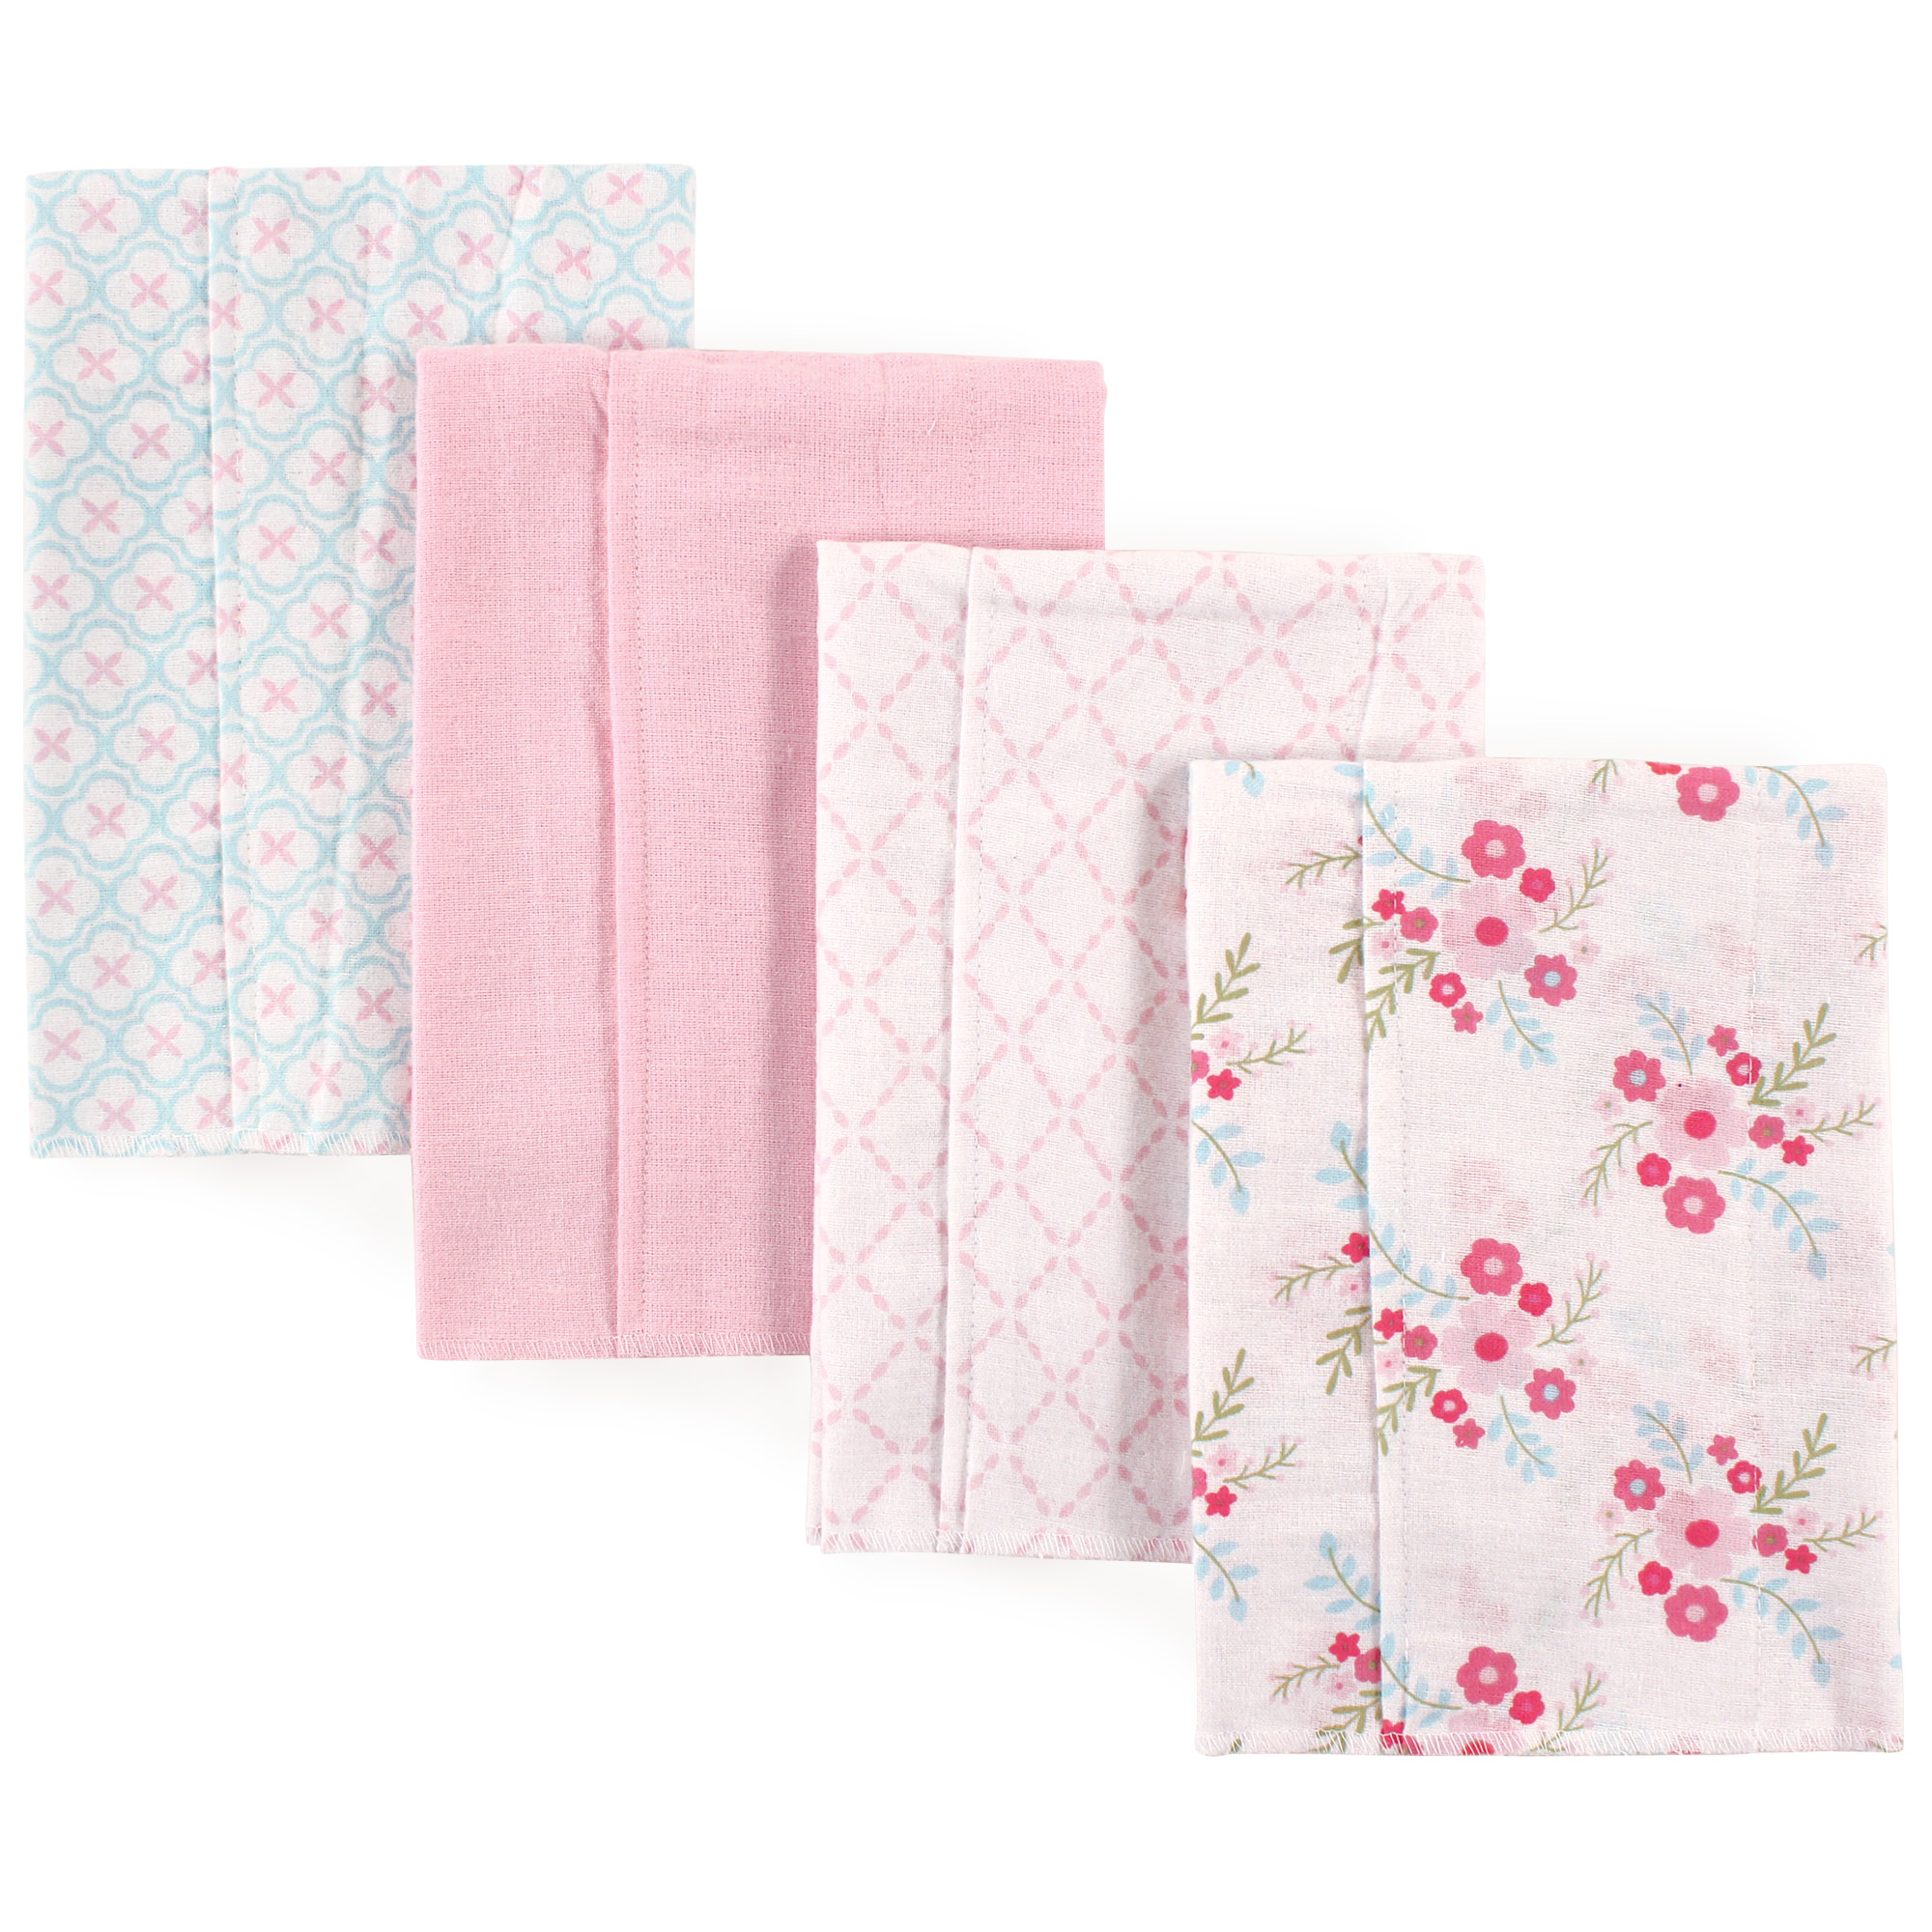 Luvable Friend Baby Boy and Girl Burp Cloths Flannel, 4-Pack - Floral